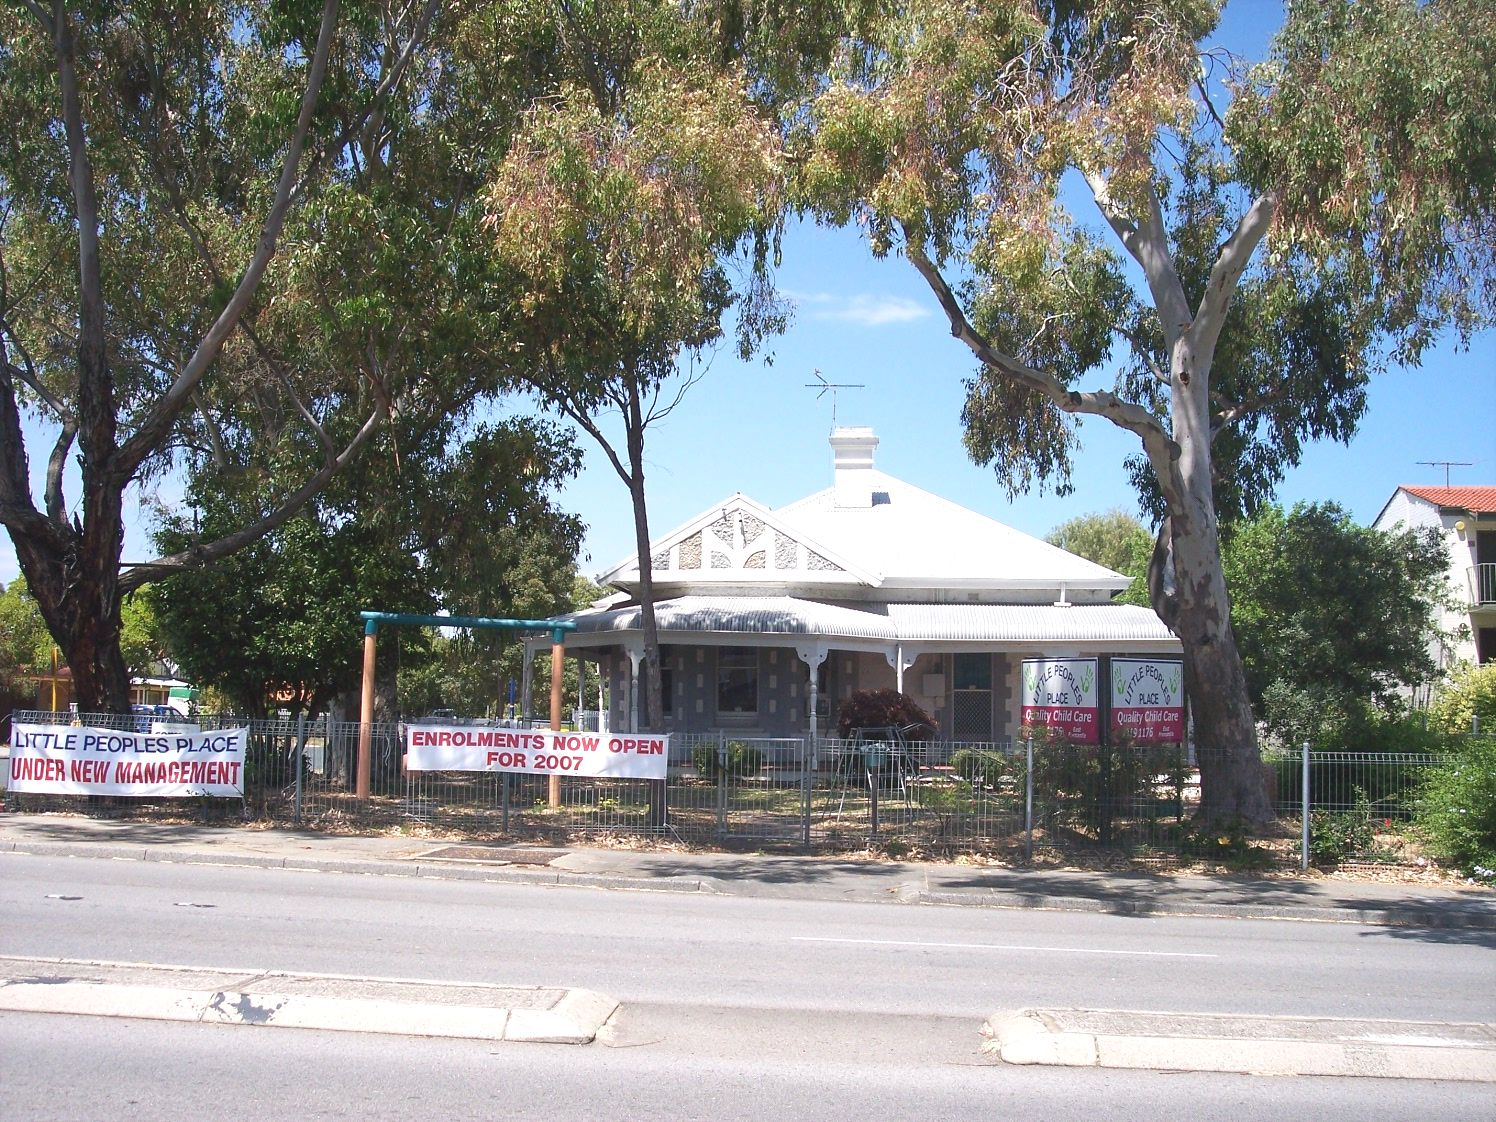 31-10-06 View S 193 Canning Highway.jpg